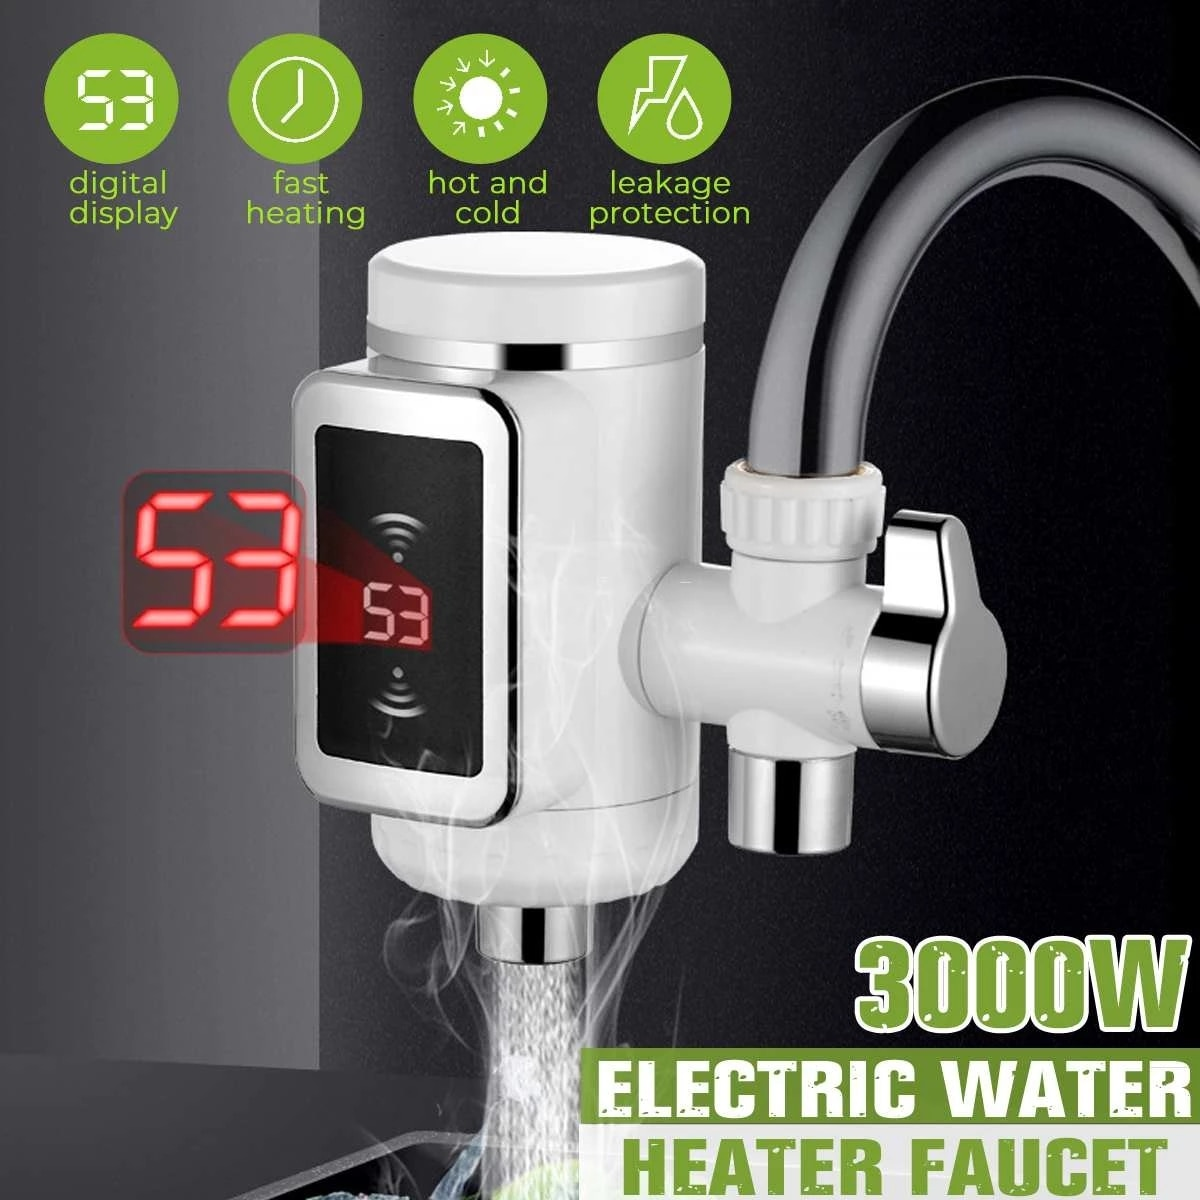 3000W LED Display Tankless Water Heater Electric Kitchen Water Heating Tap Instant Hot Water Faucet